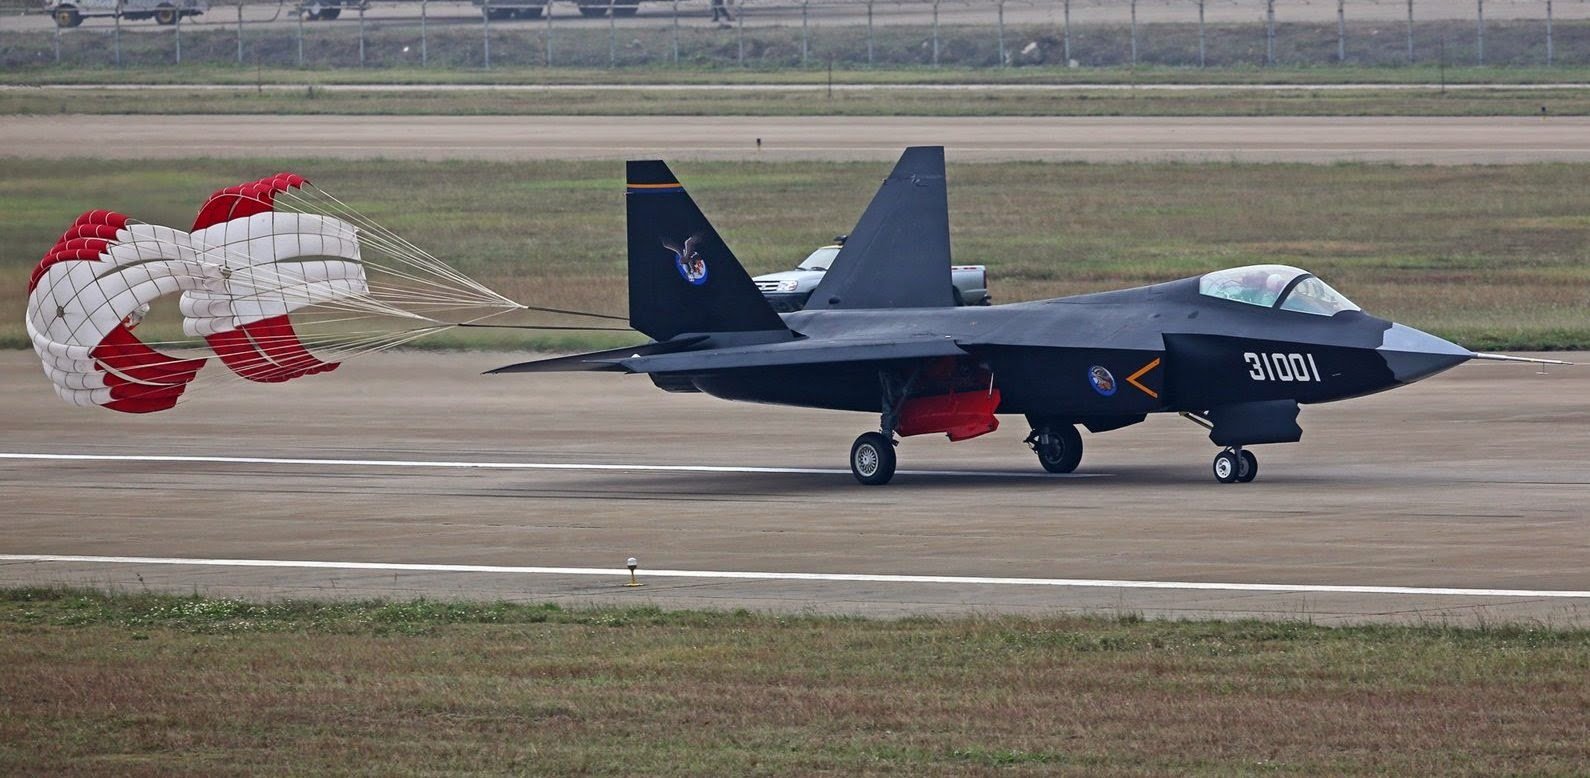 Chinese FC-31/J-31Shen Fei (Falcon Eagle) Stealth Fighter ...